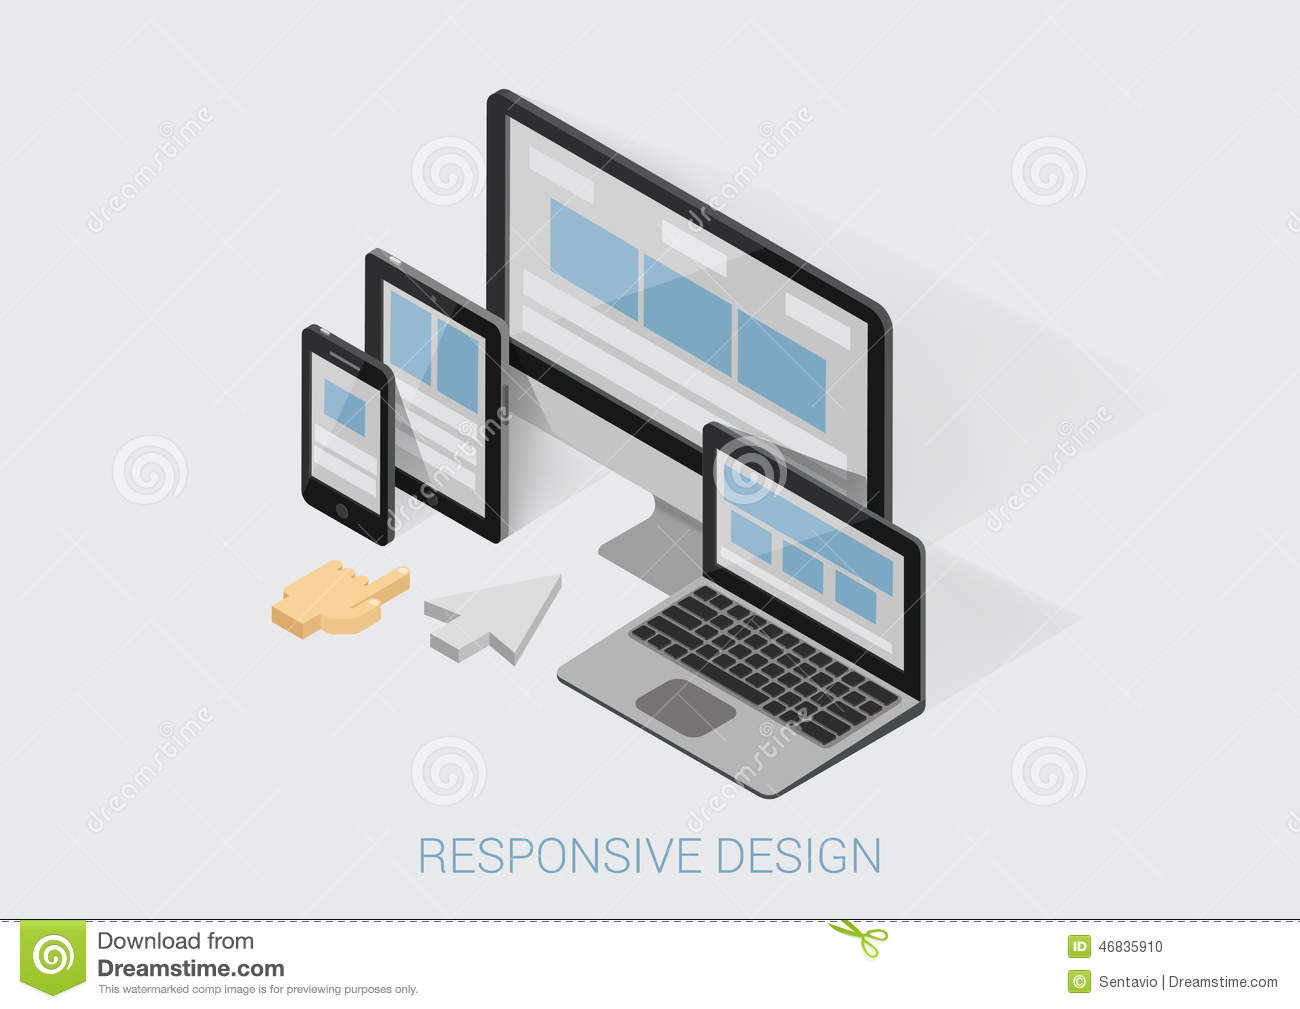 Flat 3d isometric responsive web design infographic for 3d flat design online